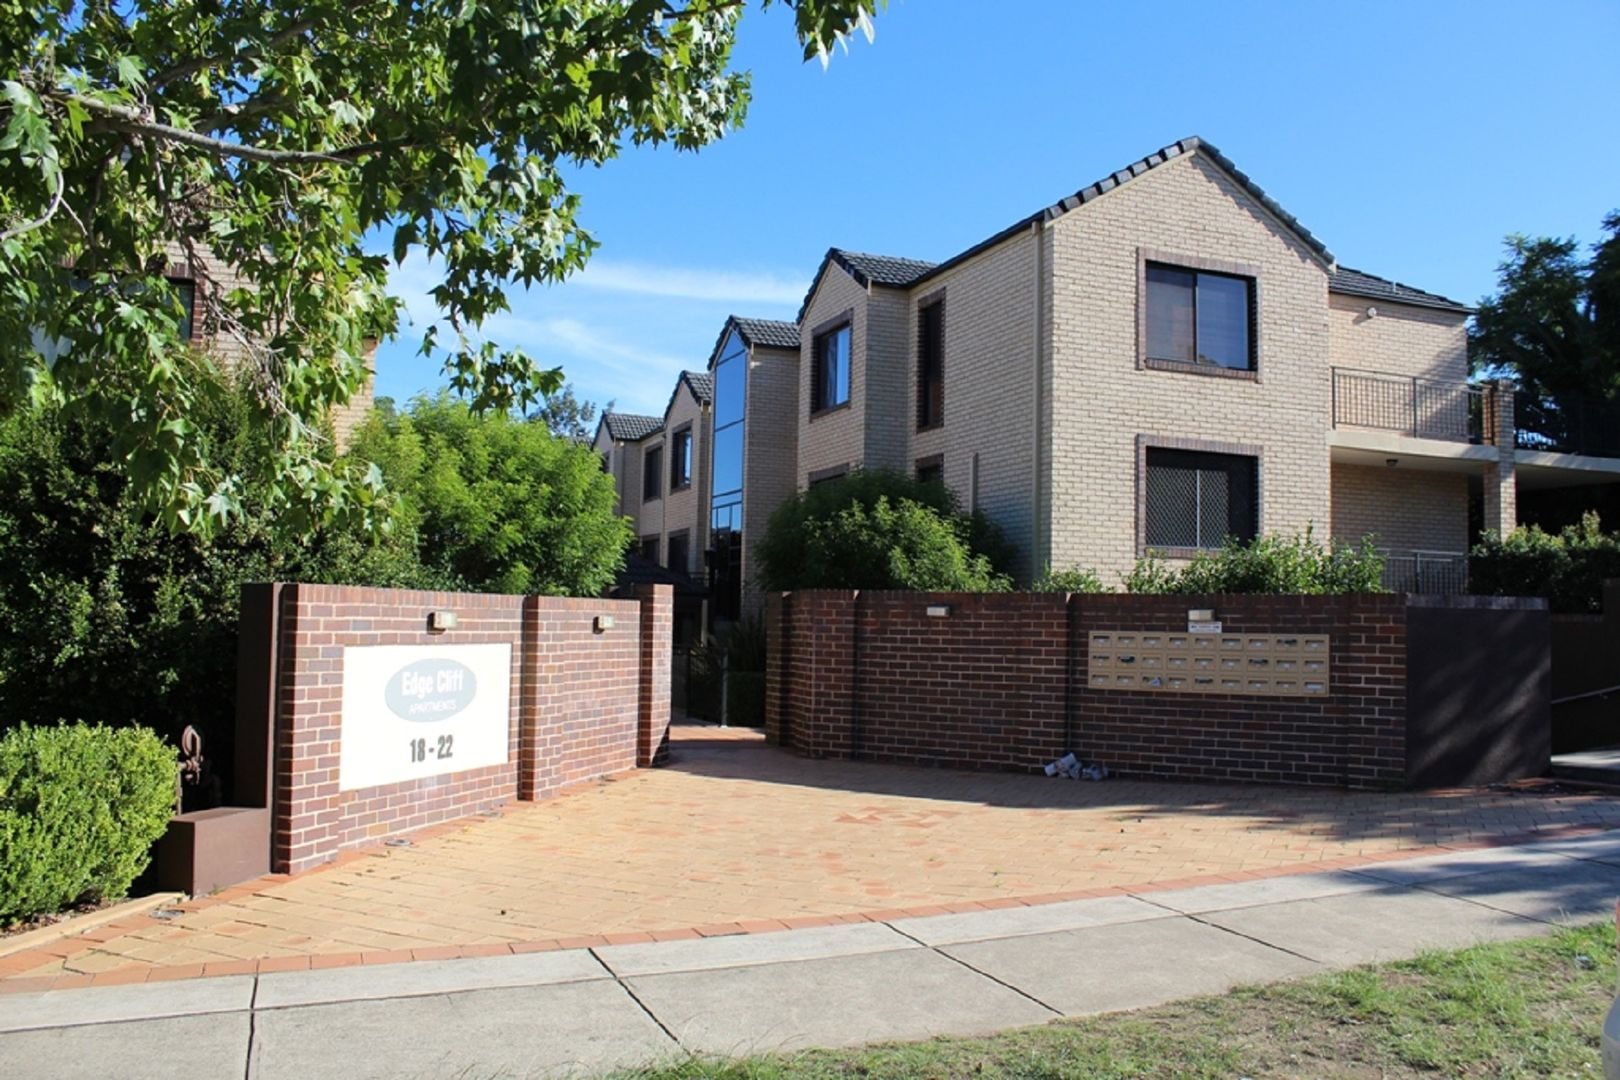 22/18-22 Campbell Street, Northmead NSW 2152, Image 0